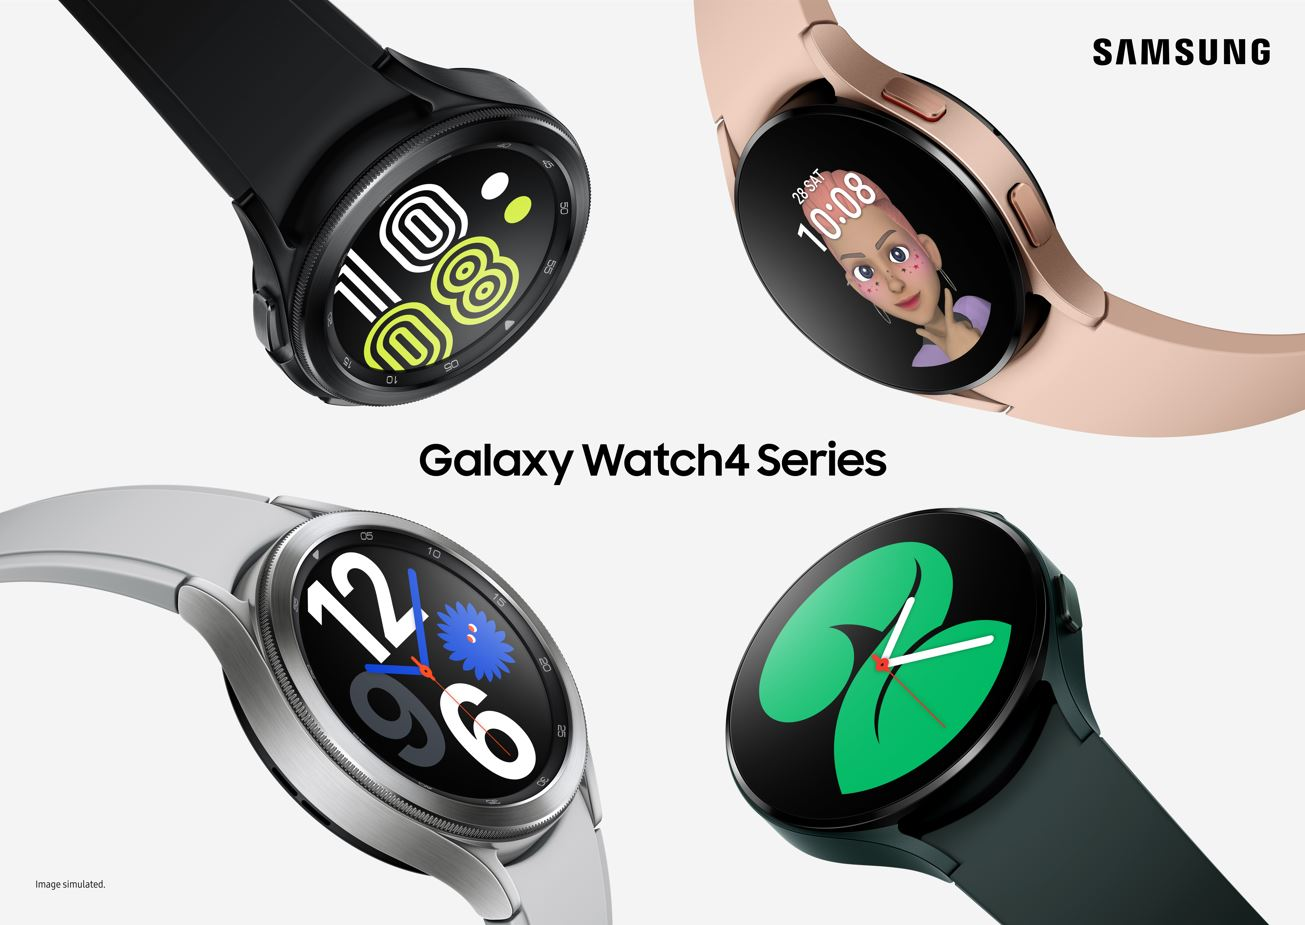 Samsung releases another new variation in the Galaxy Watch 4 series